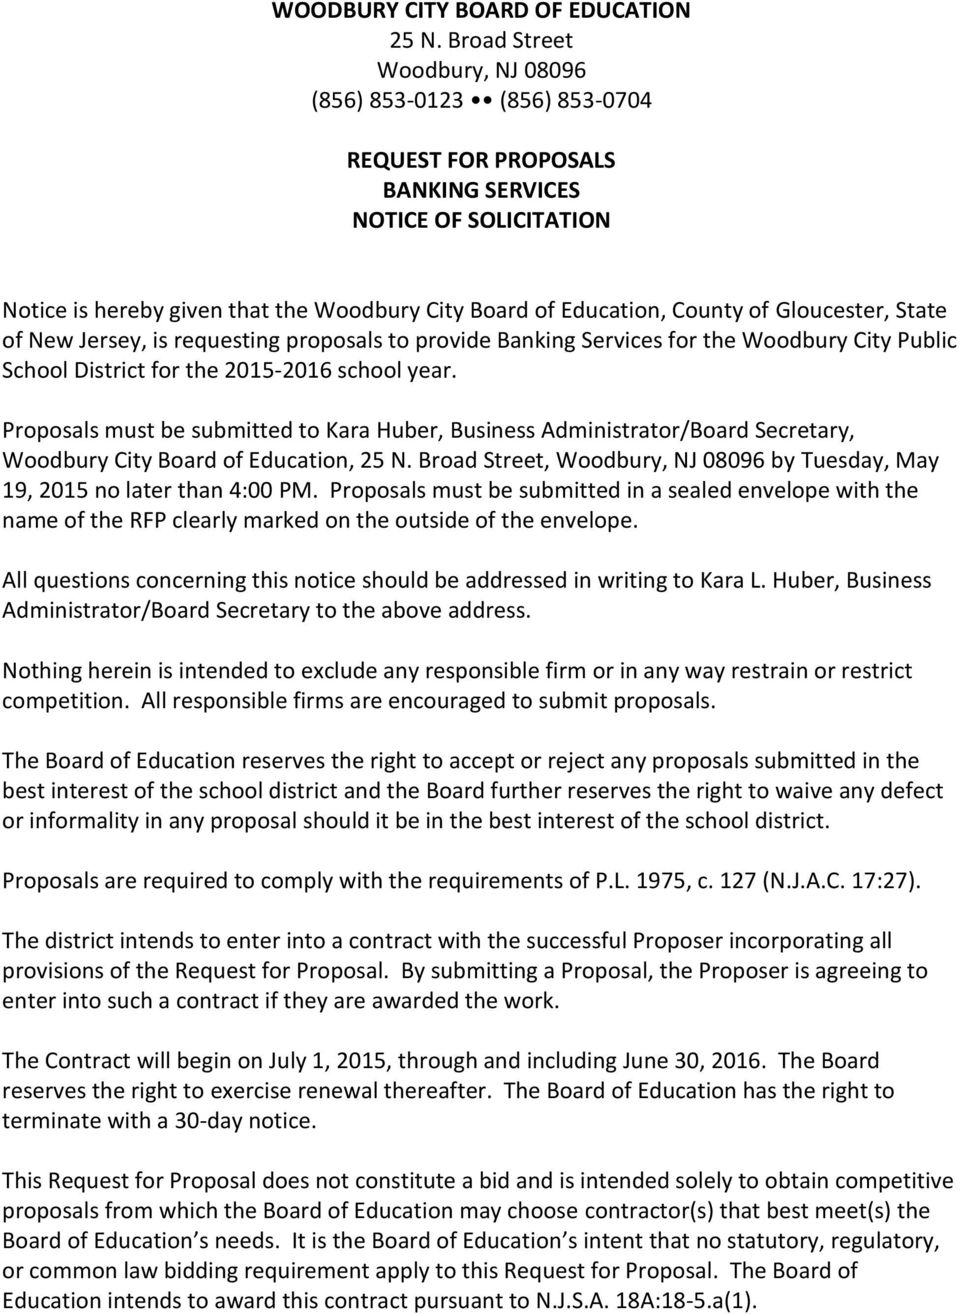 Gloucester, State of New Jersey, is requesting proposals to provide Banking Services for the Woodbury City Public School District for the 2015-2016 school year.